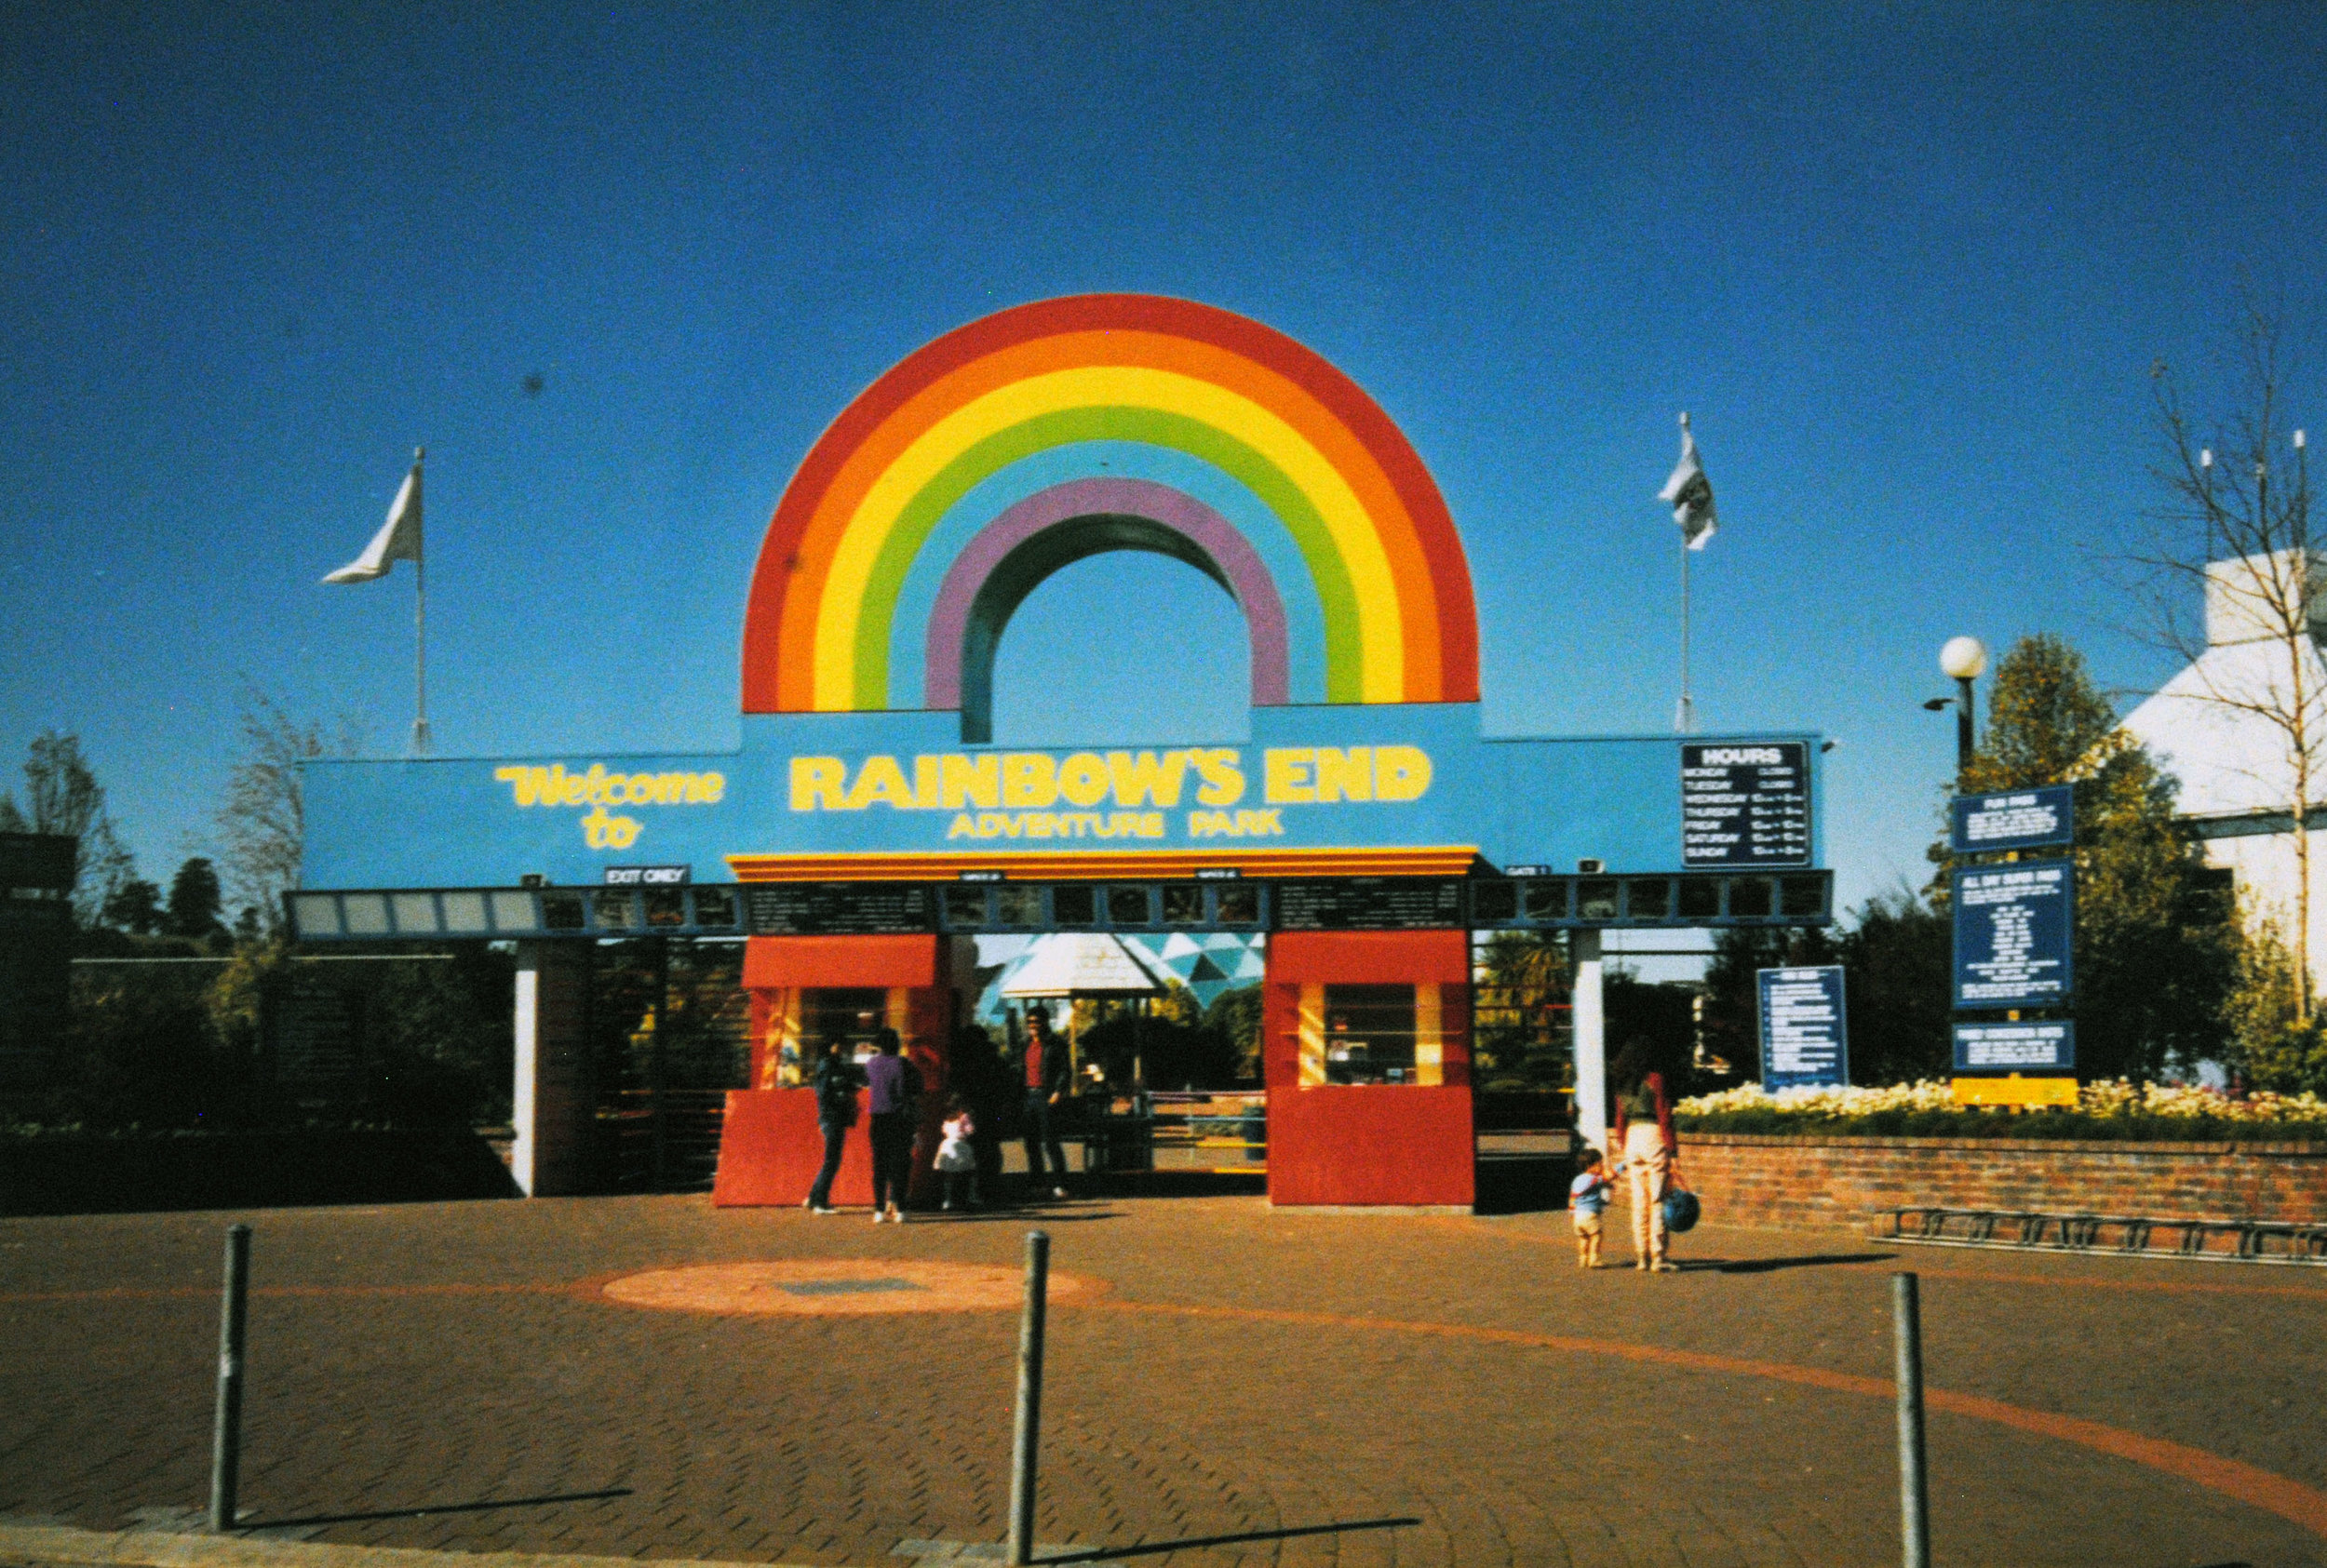 The original Rainbowsend sign. Image credit: Rainbowsend. Date unknown.